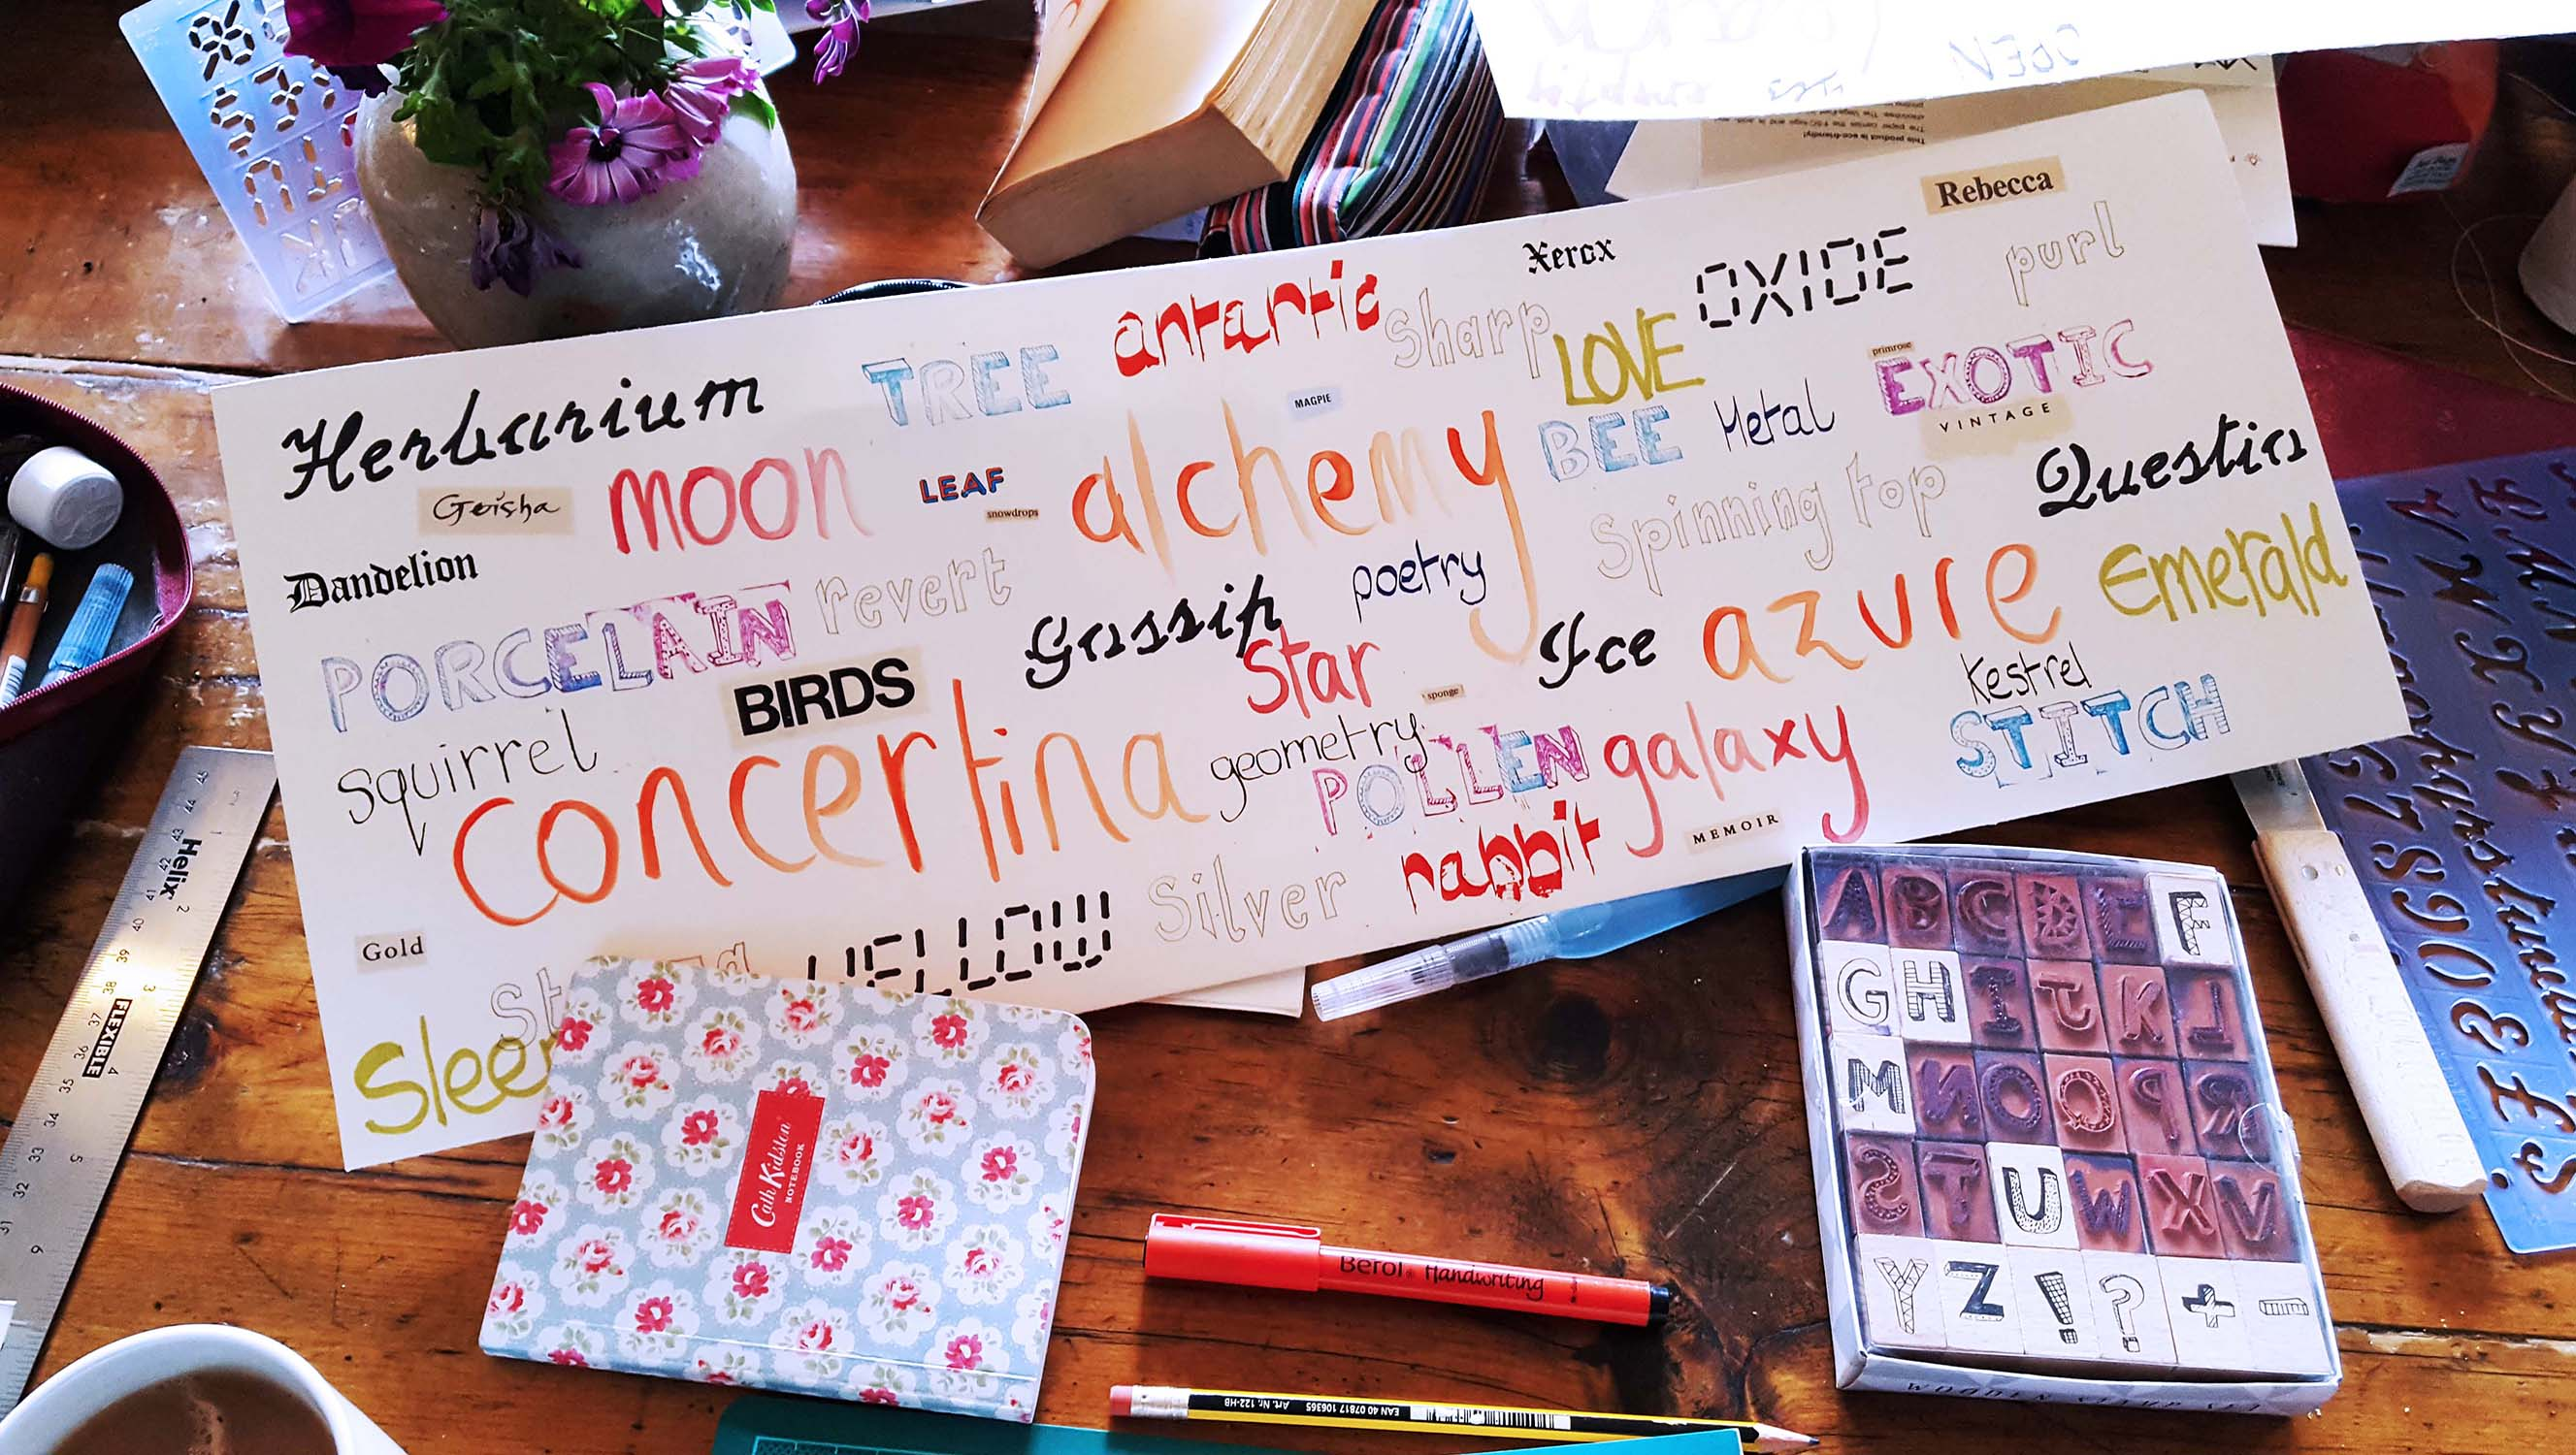 Word-art for a book cover, Book Art course, Lumb Bank, Oct16